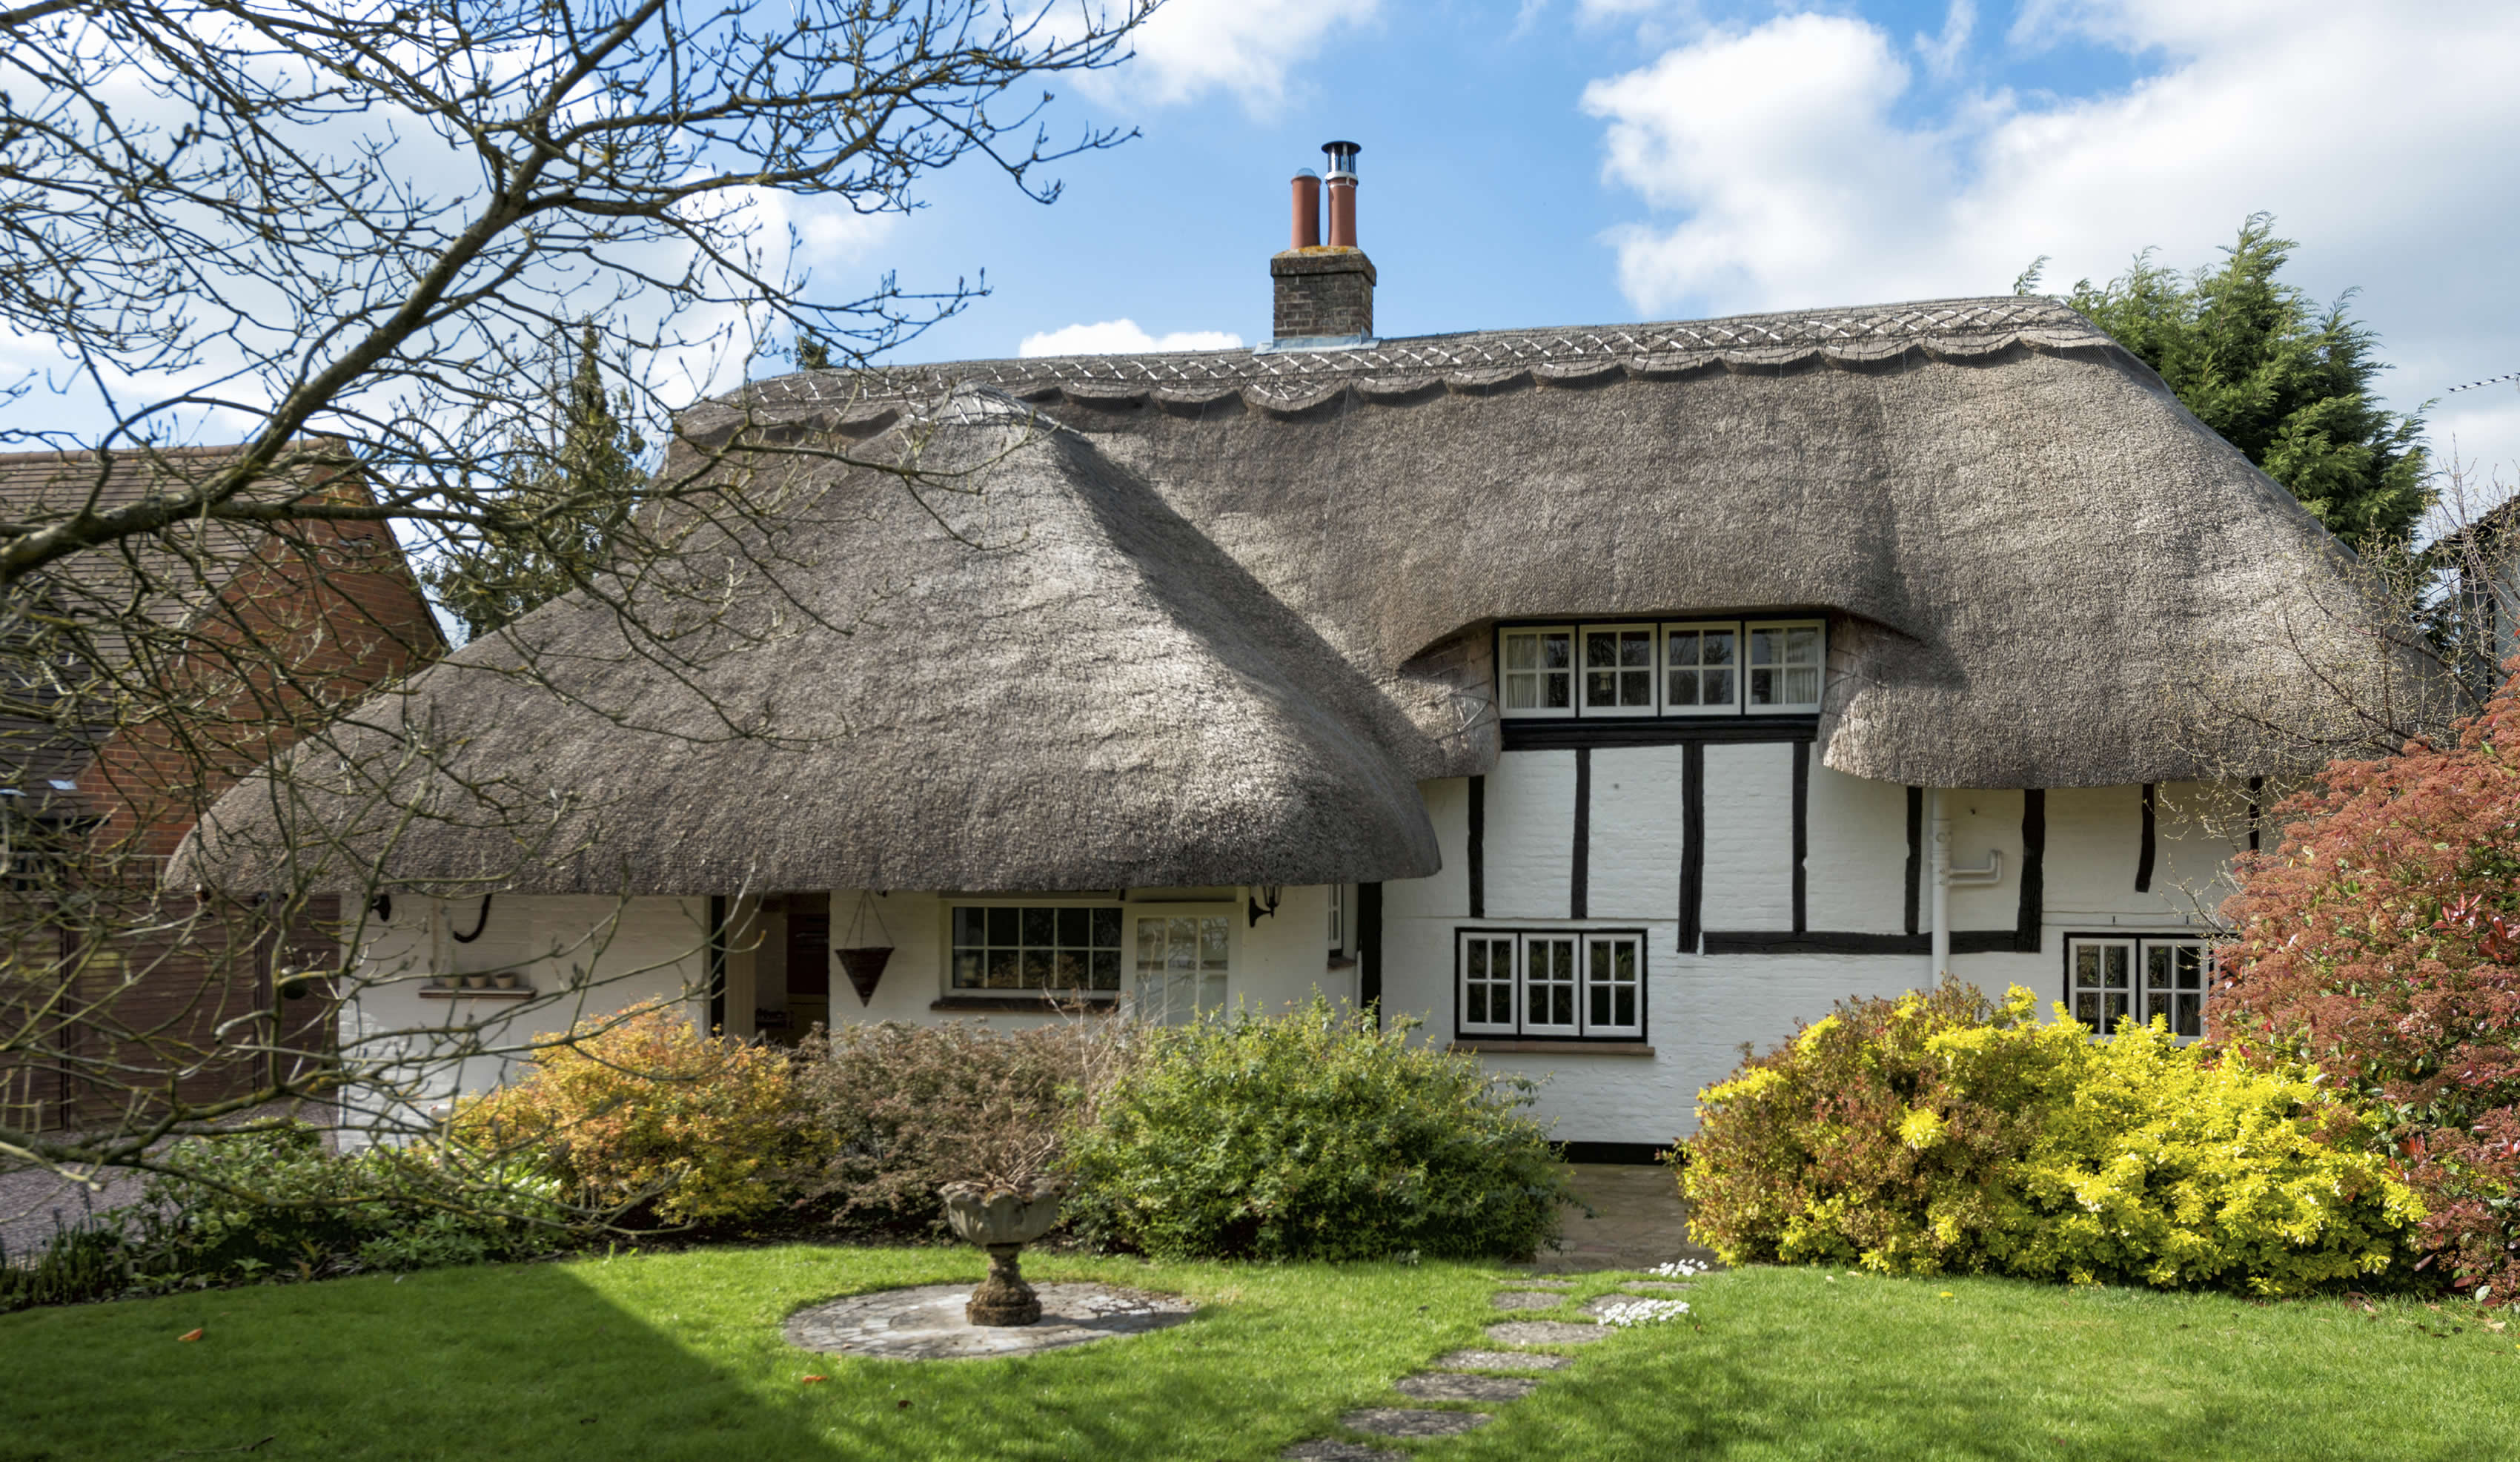 Discover These Fire Safety Tips For Thatched Buildings